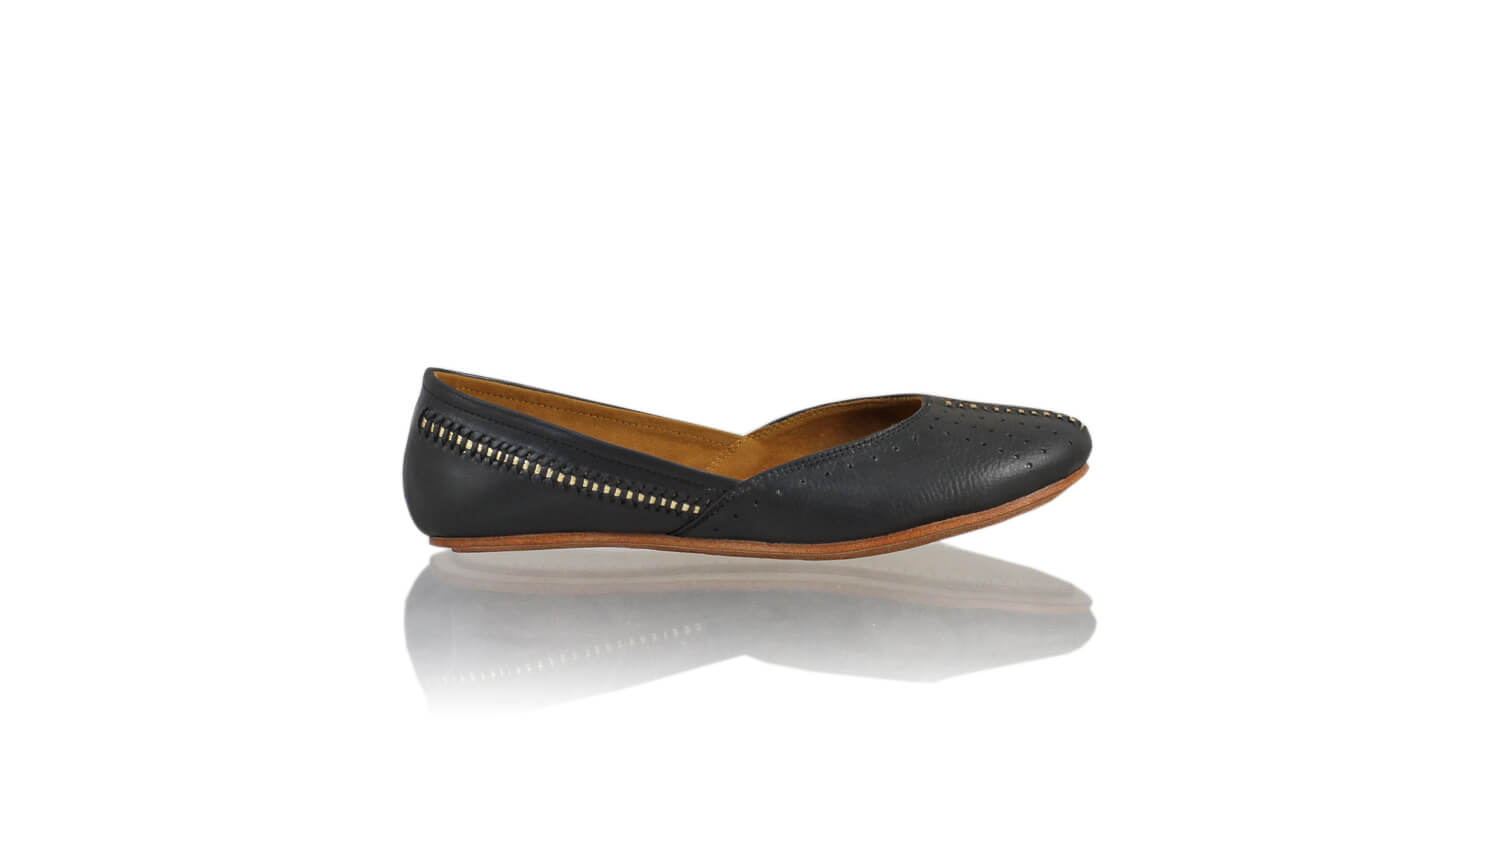 Leather-shoes-Punjab Sulam 5mm Ballet - Black & Gold-flats ballet-NILUH DJELANTIK-NILUH DJELANTIK